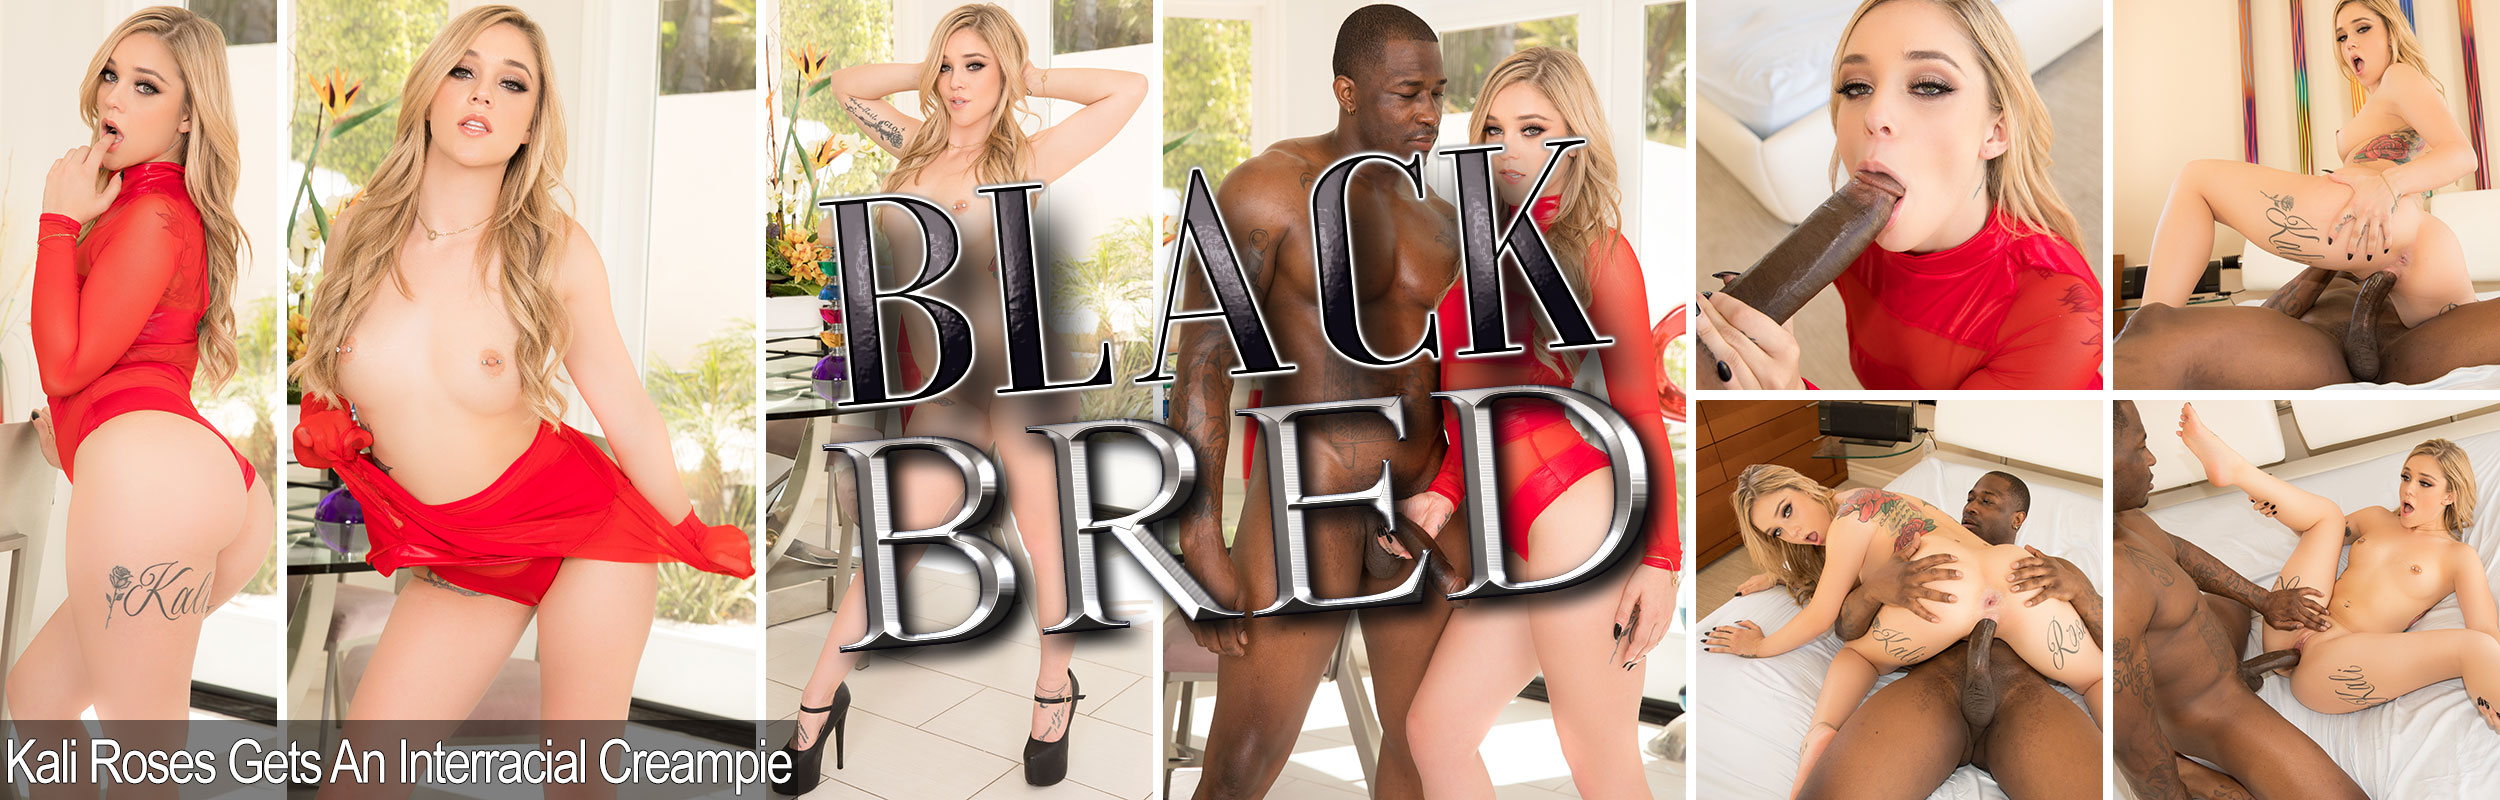 Kali Roses Gets An Interracial Creampie